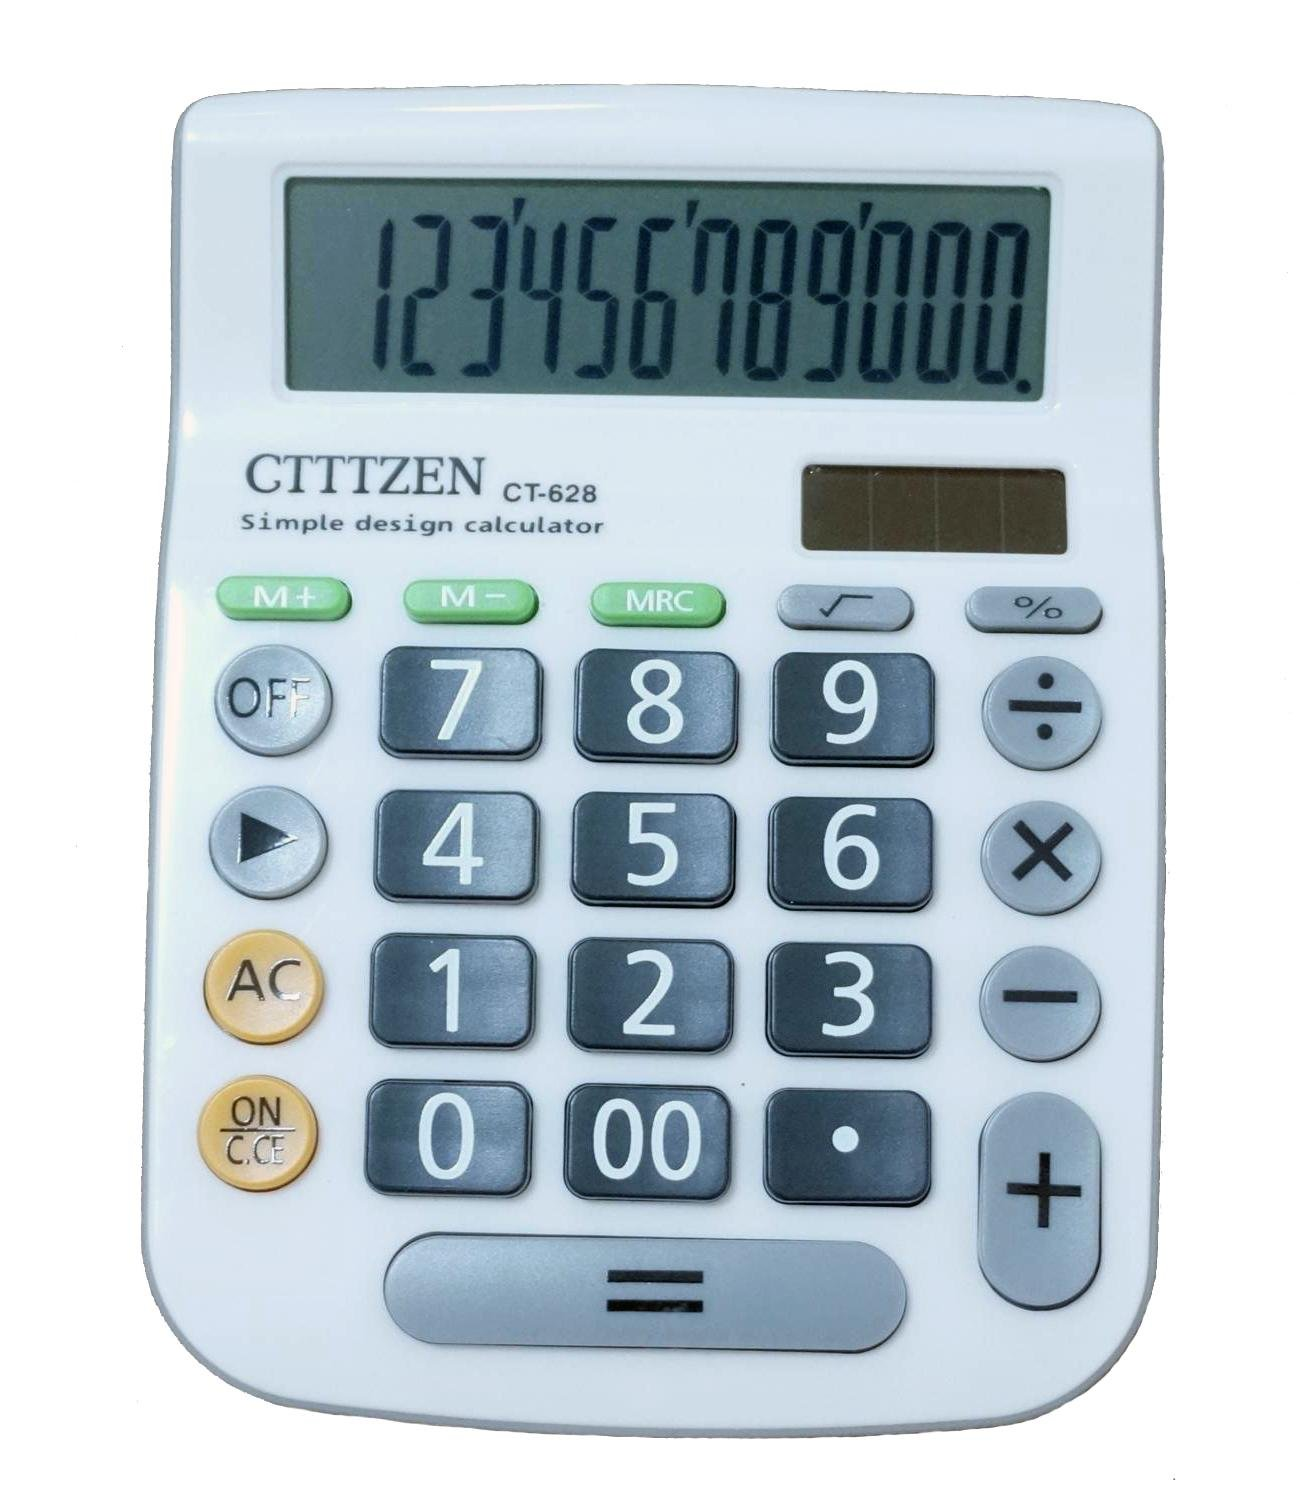 Calculators, Big Button 12 Digit Large LCD Display, Handheld for Daily and Basic Office, Solar and Battery Dual Power, White by Bestjoy